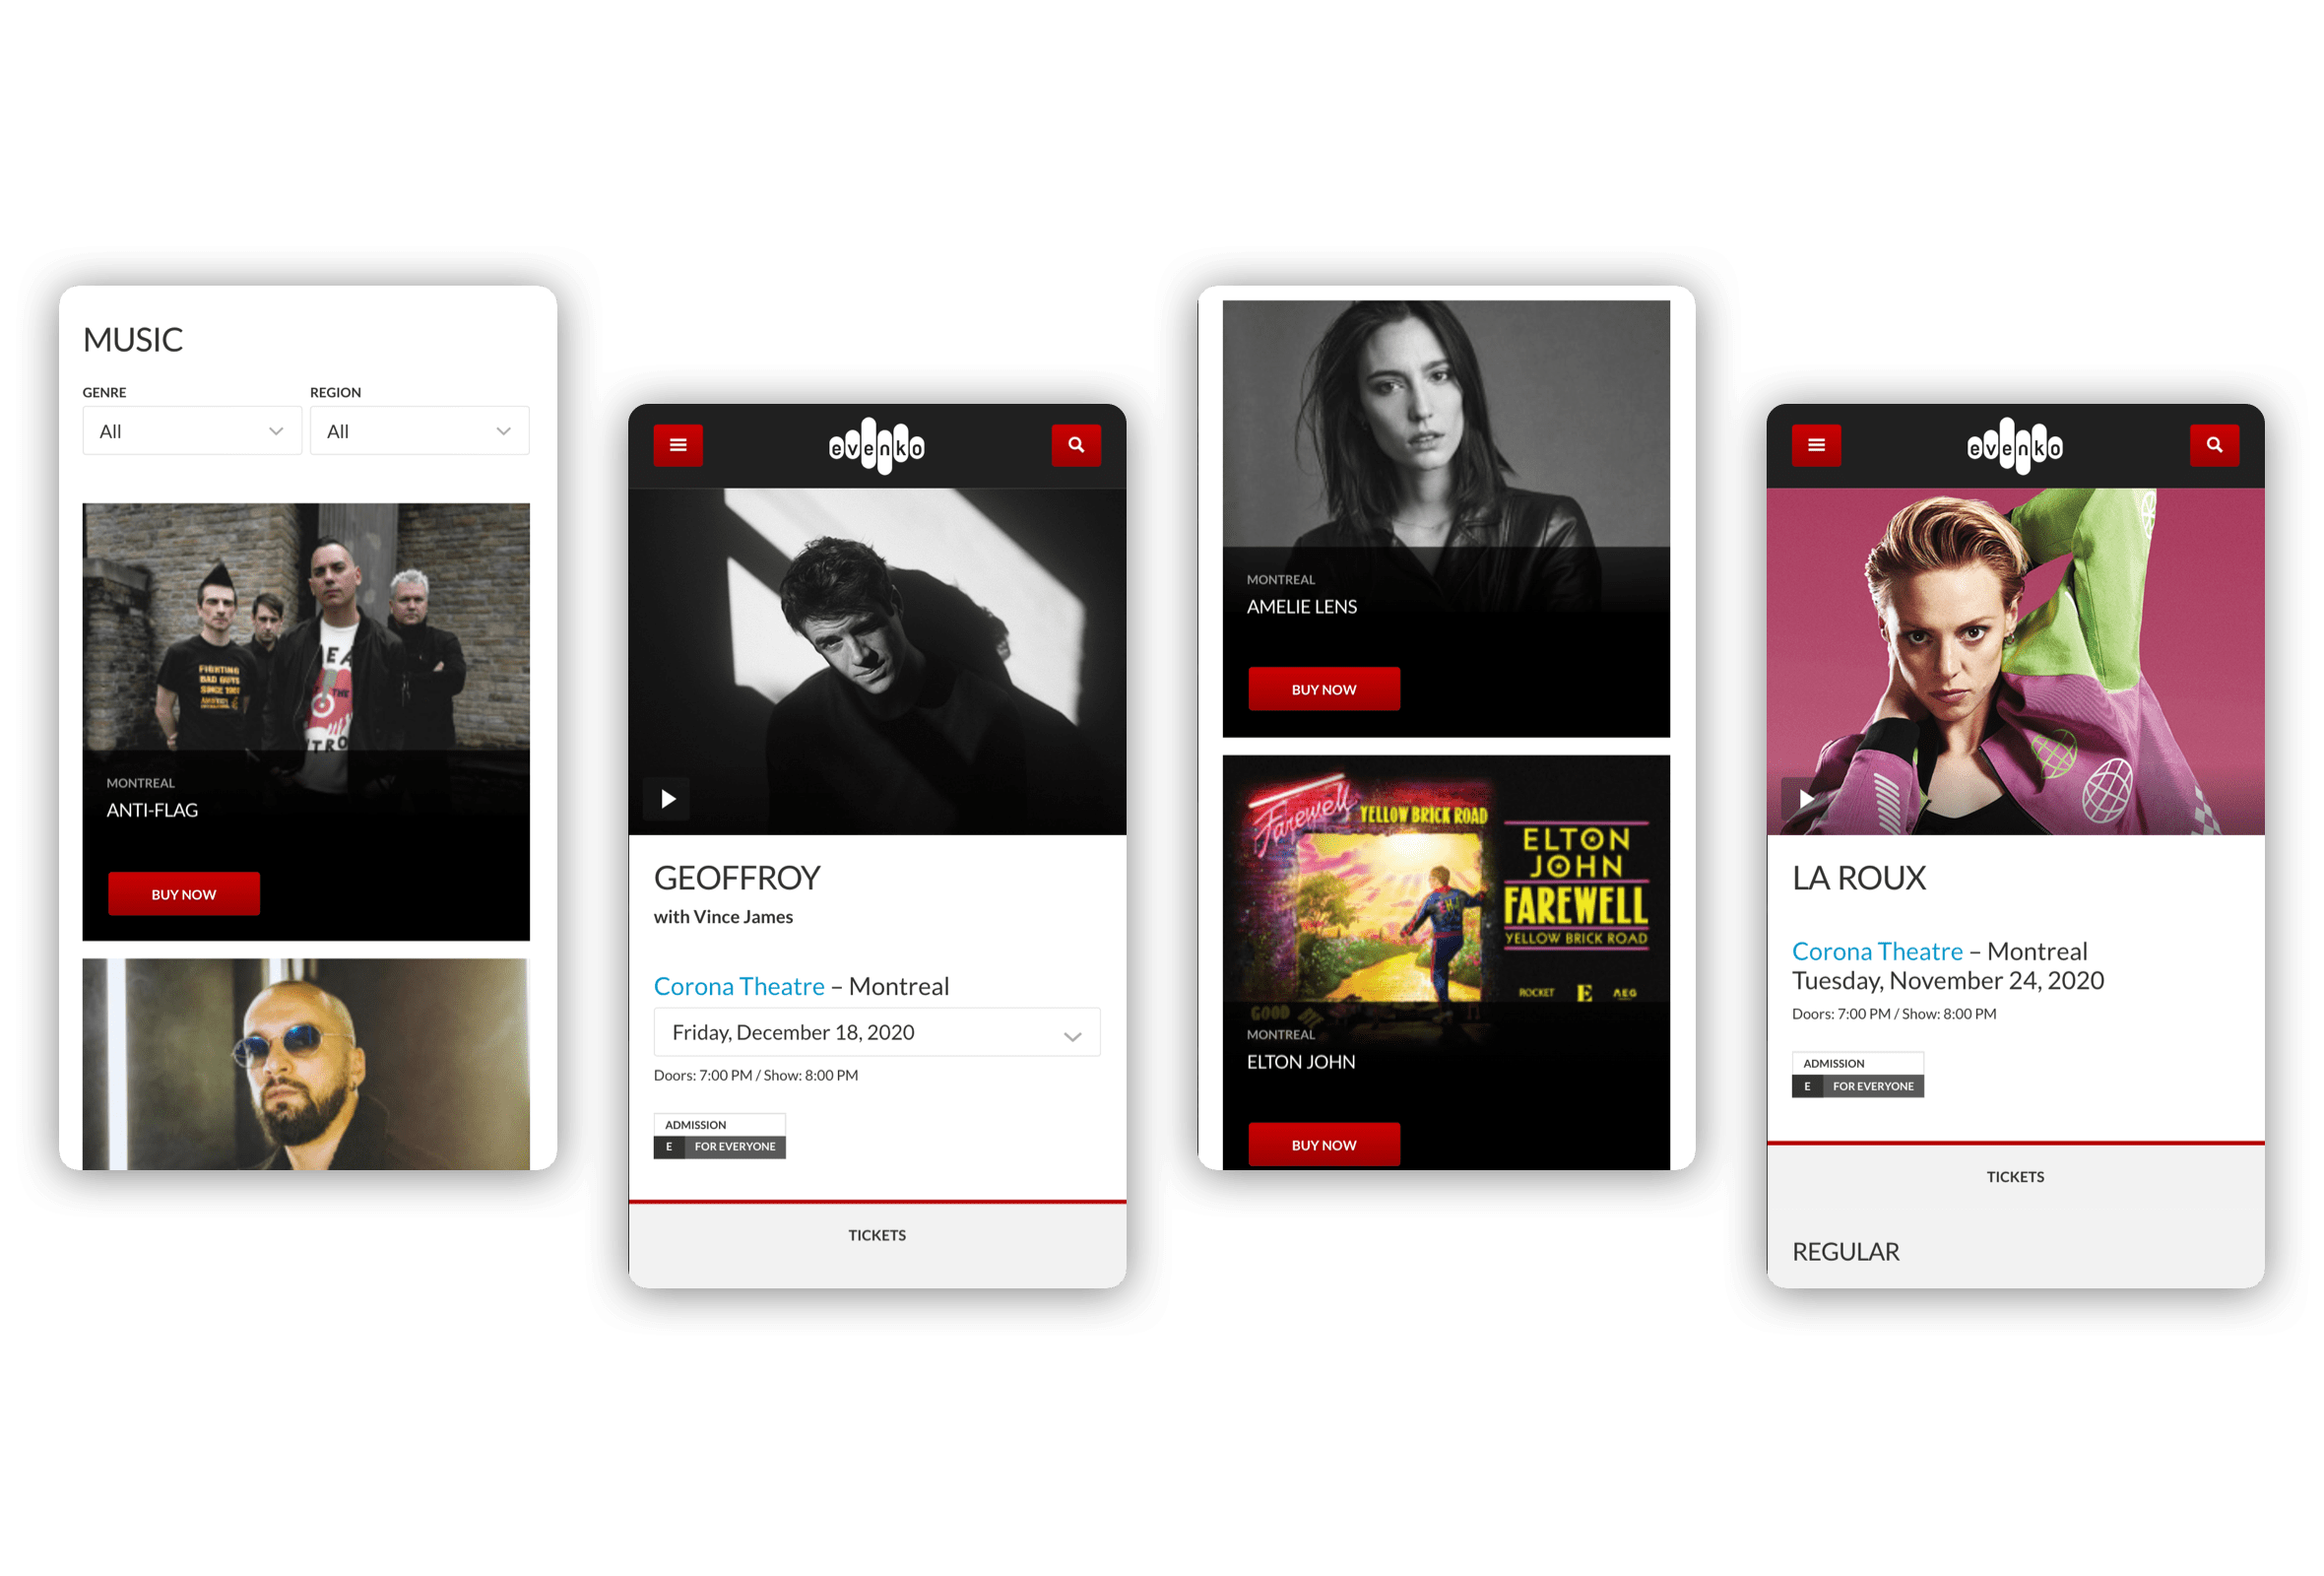 Mobile visuals for various pages of the evenko website